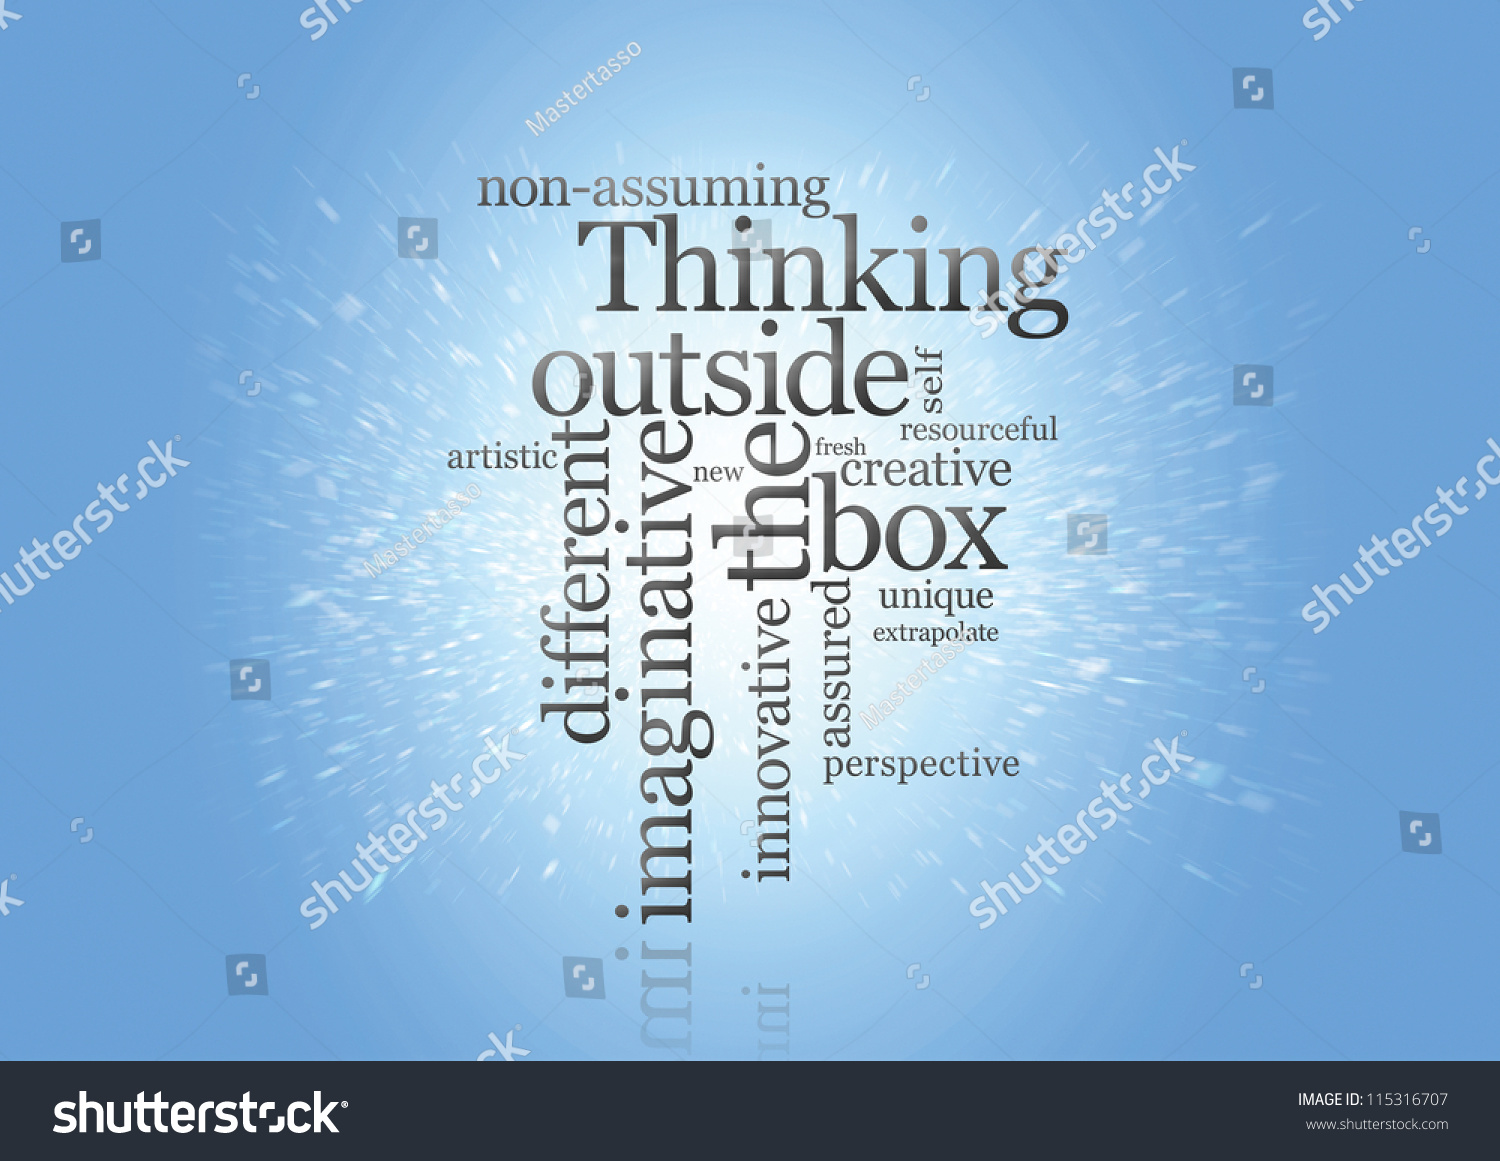 thinking outside the box The 'box', with its implication of rigidity and squareness, symbolises constrained and unimaginative thinking this is in contrast to the open and unrestricted 'out of the box' or 'blue-sky' thinking.